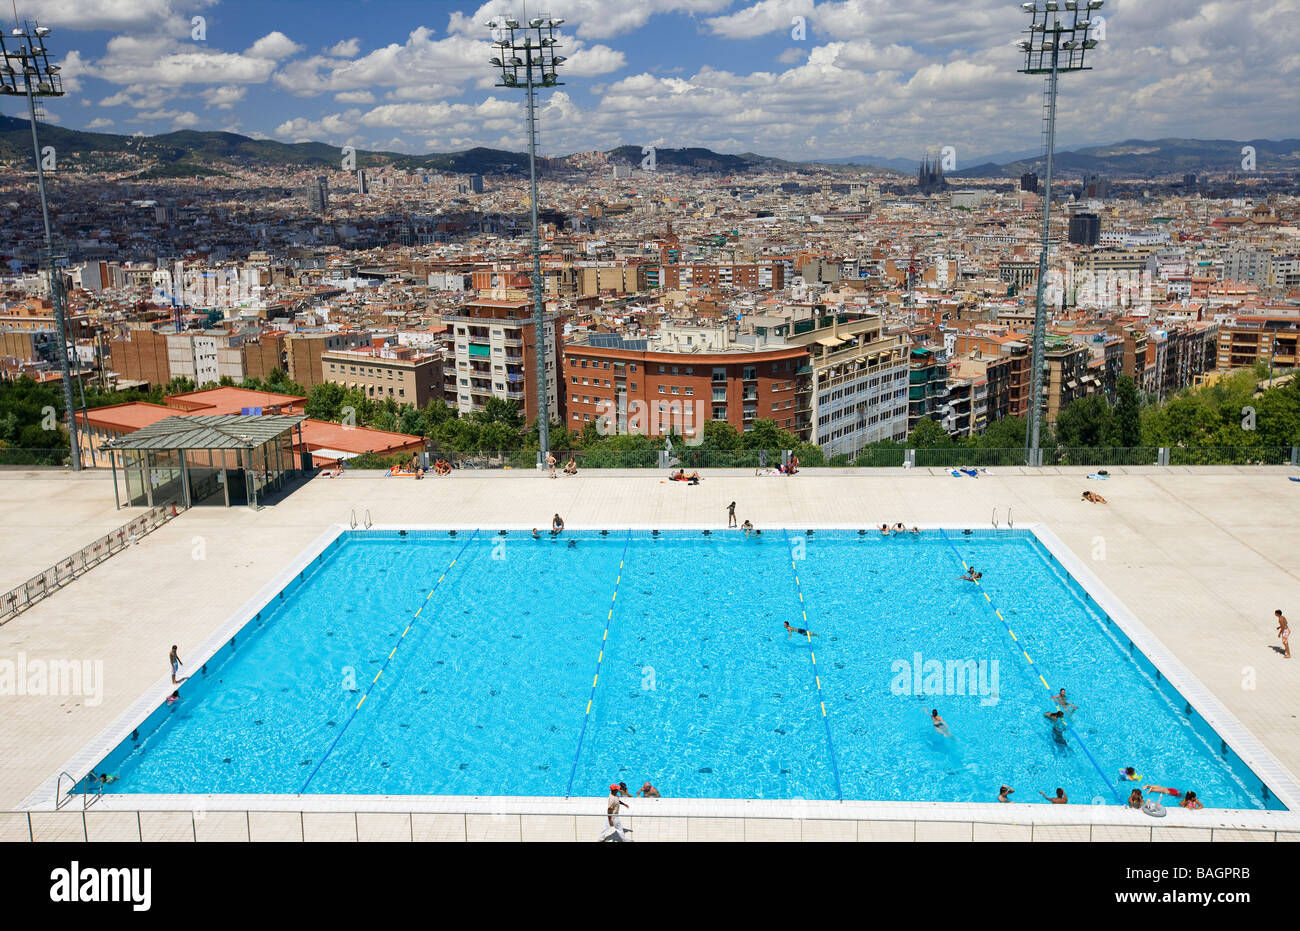 spain catalonia barcelona montjuic hill olympic swimming pool stock photo royalty free